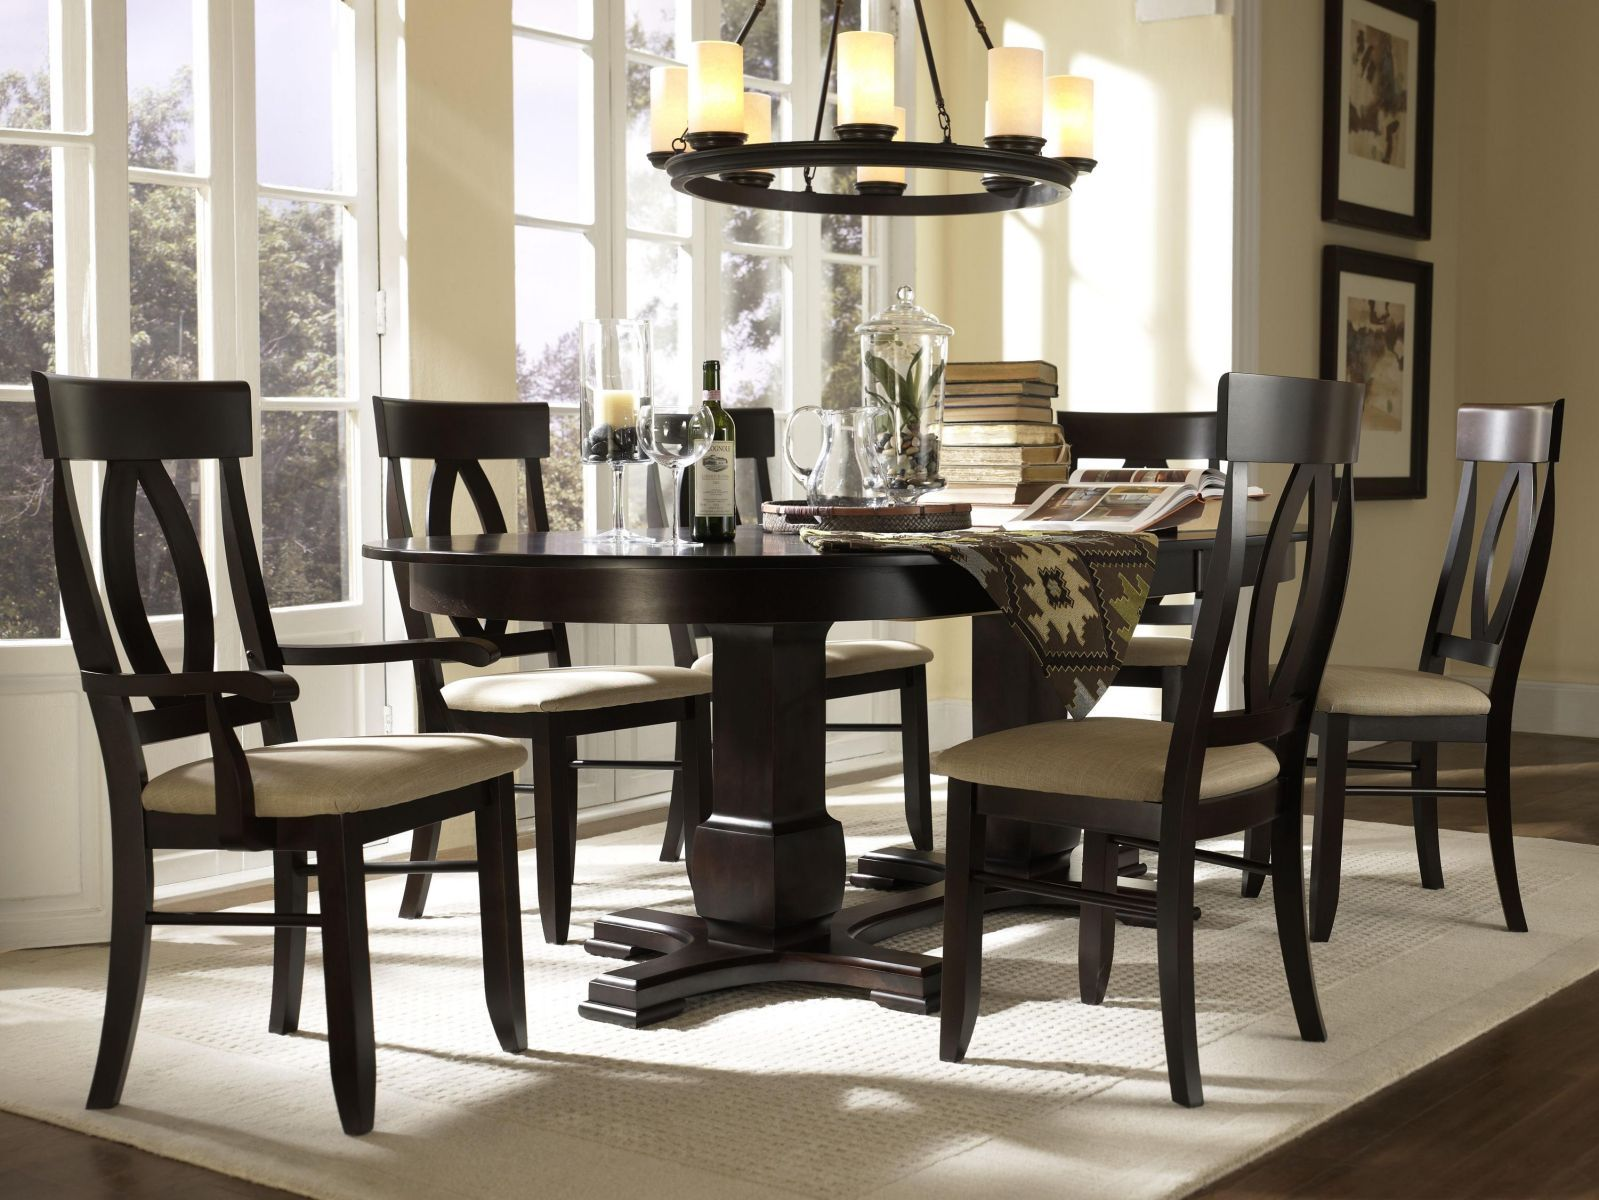 18 Astonishing Canadel Dining Chairs Pic Inspiration